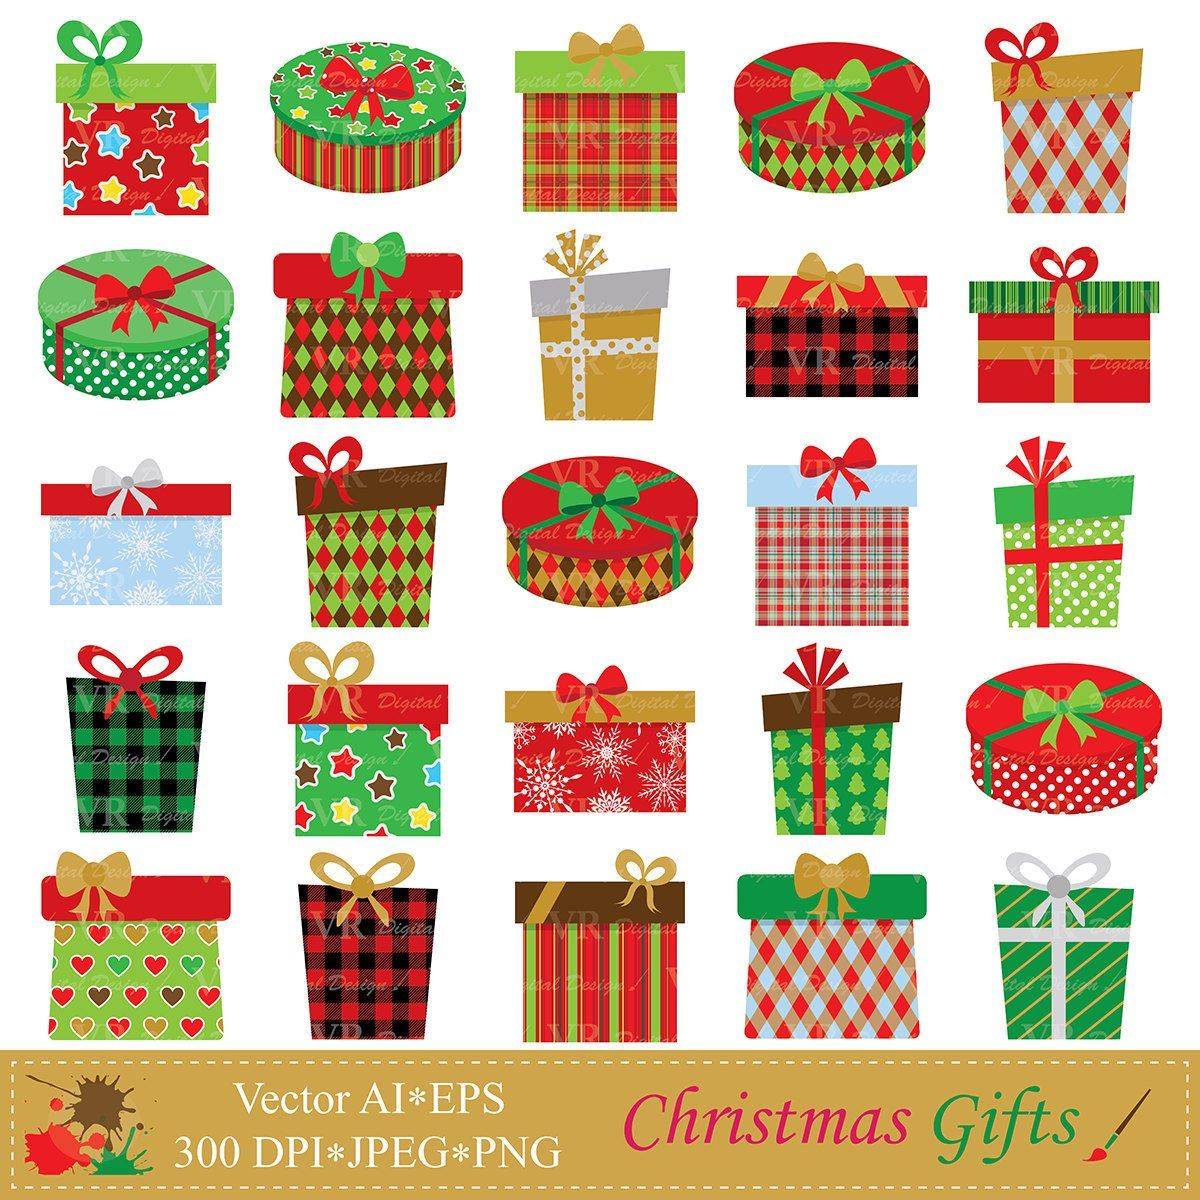 Christmas food boxes clipart picture royalty free library Christmas Gifts Clip Art, Christmas Presents Clipart, Christmas Gift ... picture royalty free library